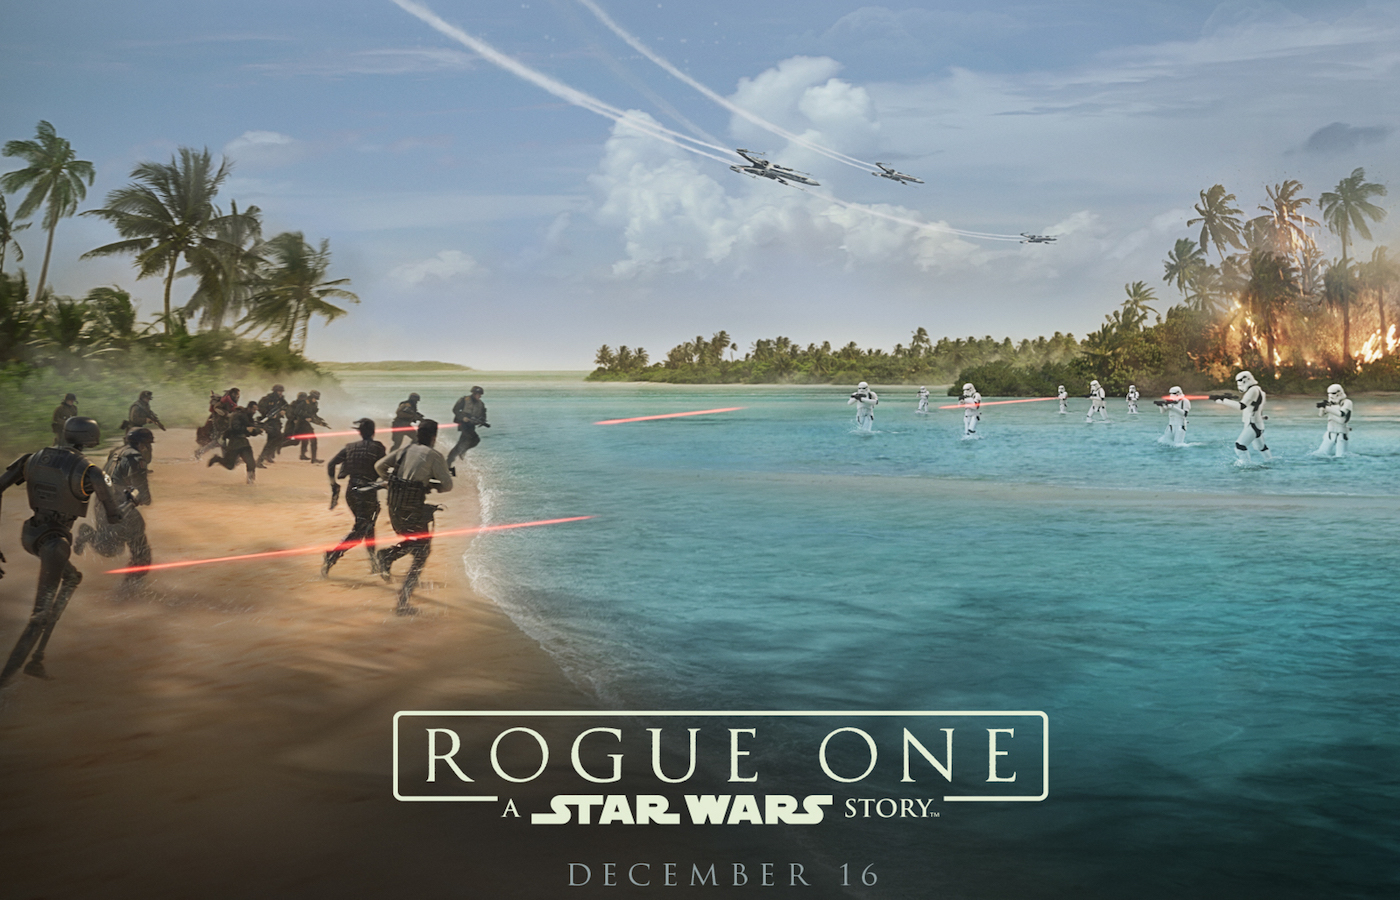 rogue-one-poster-2.jpg